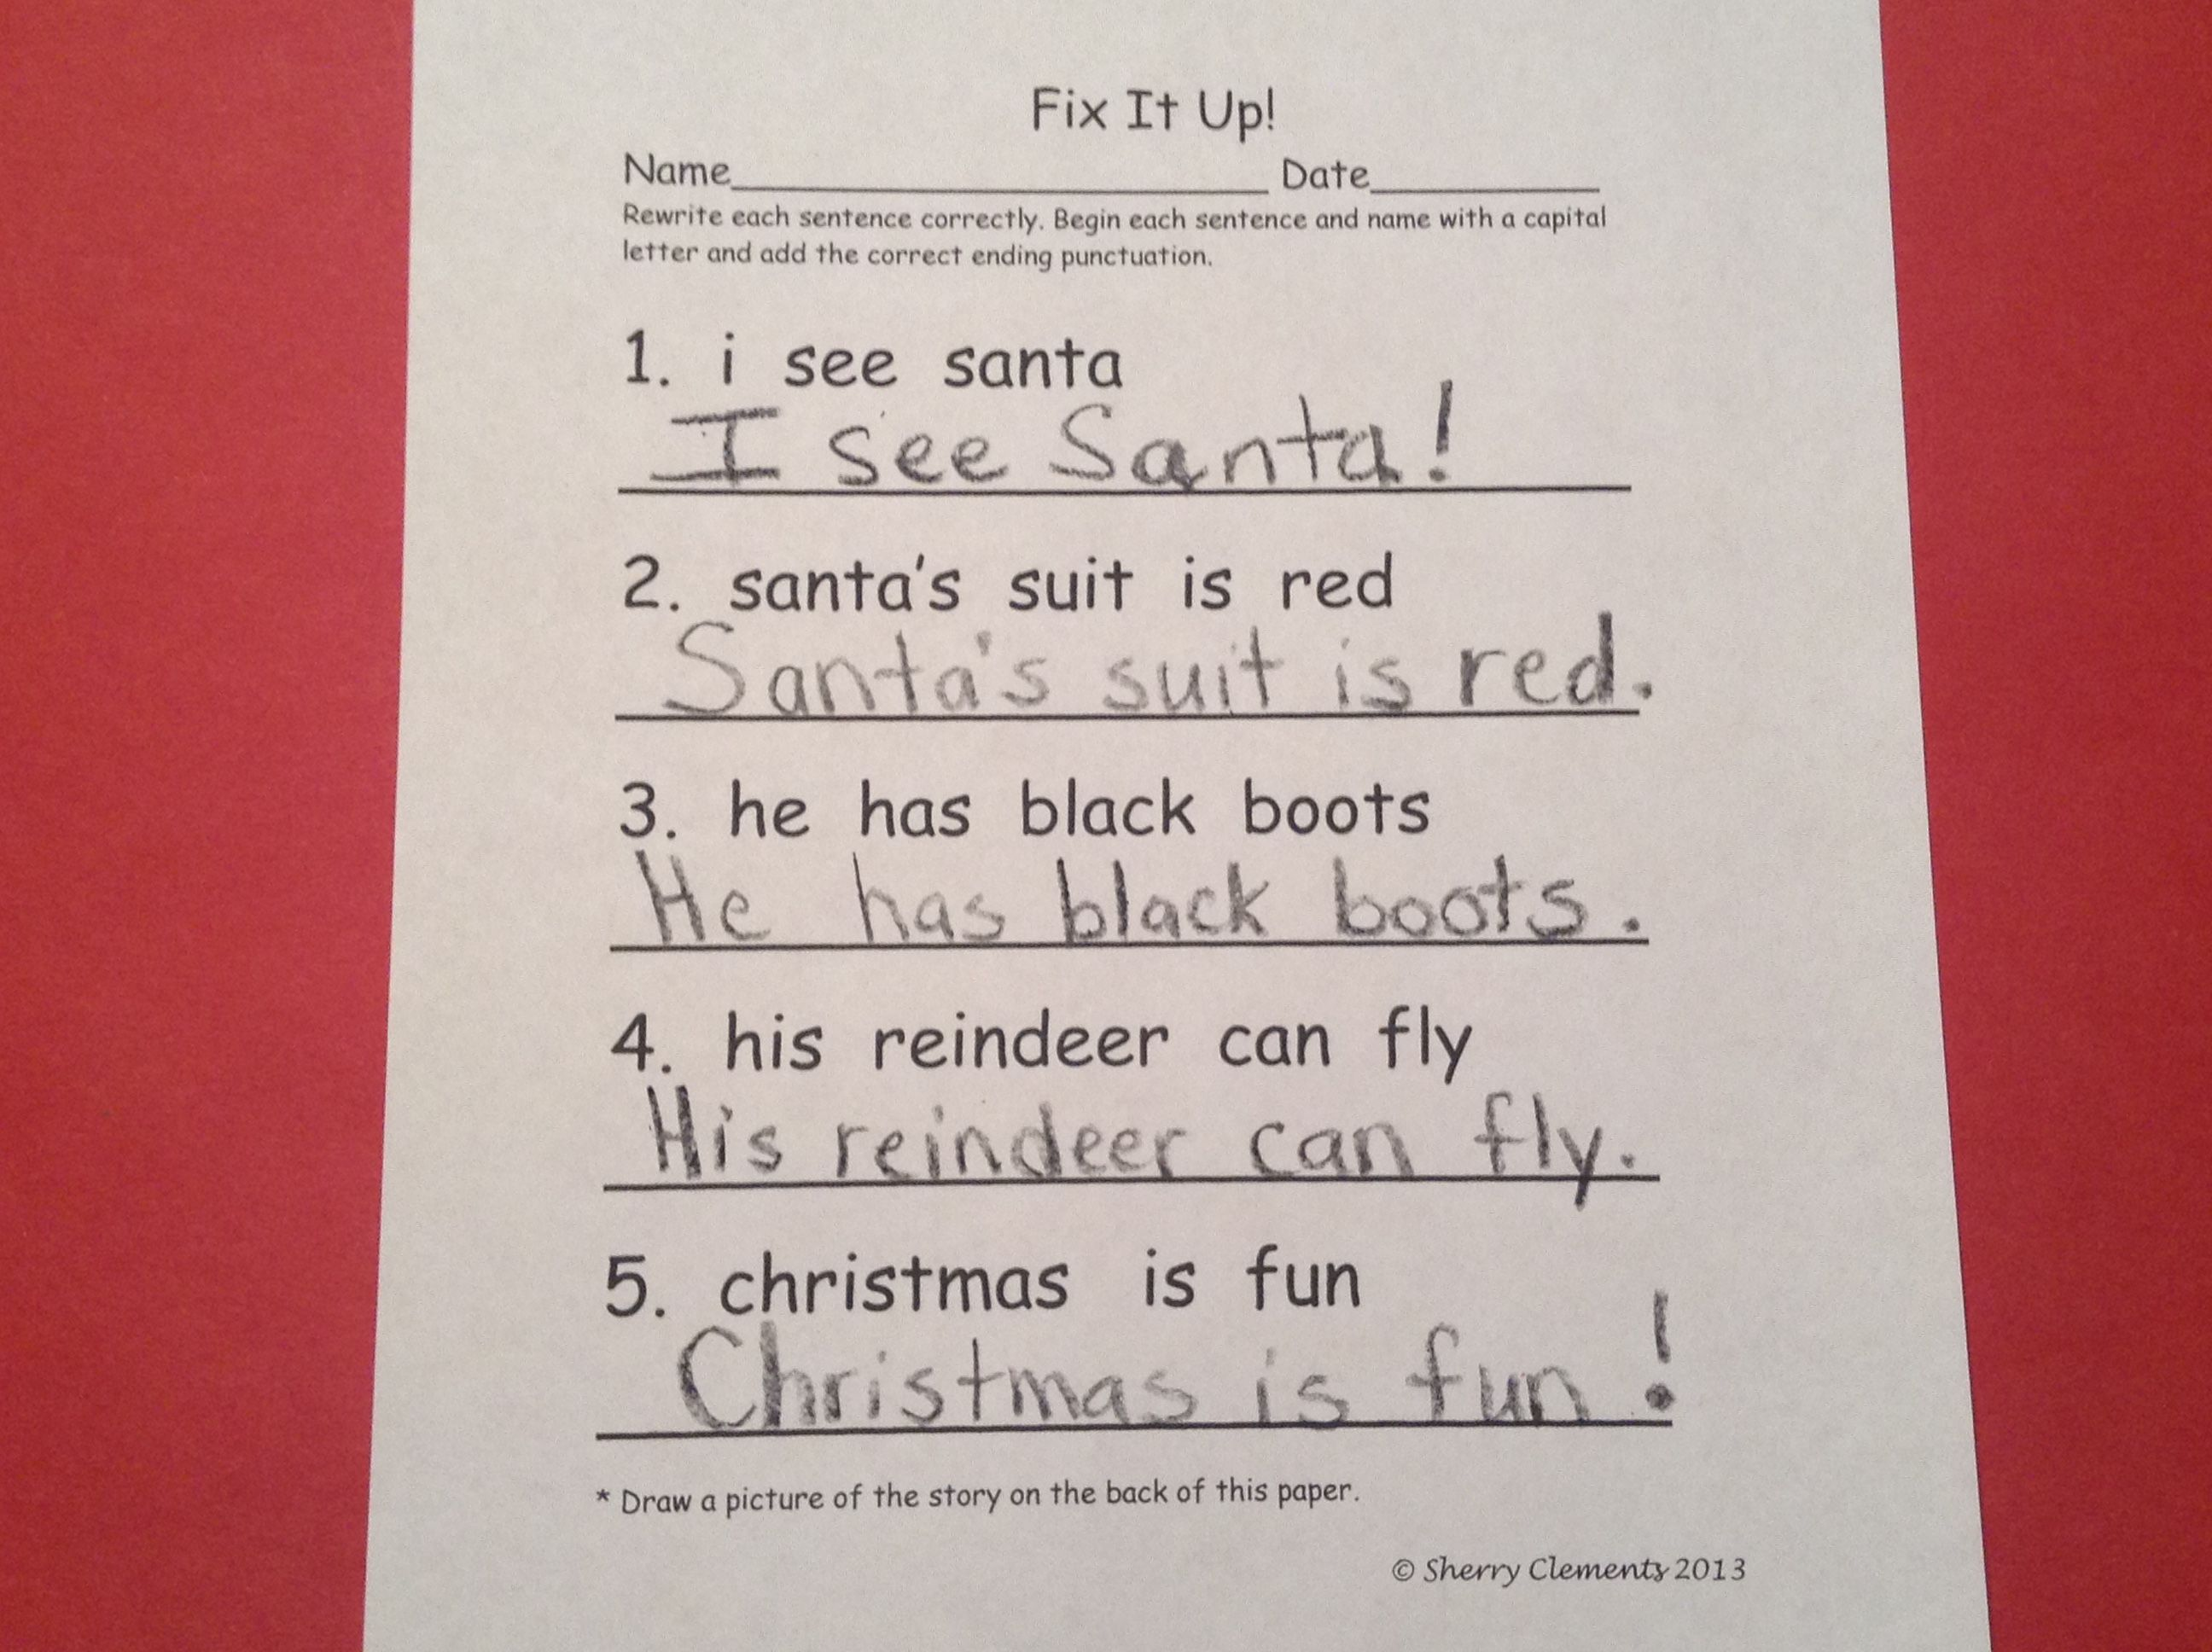 Christmas Fix It Up Sentences Freebie